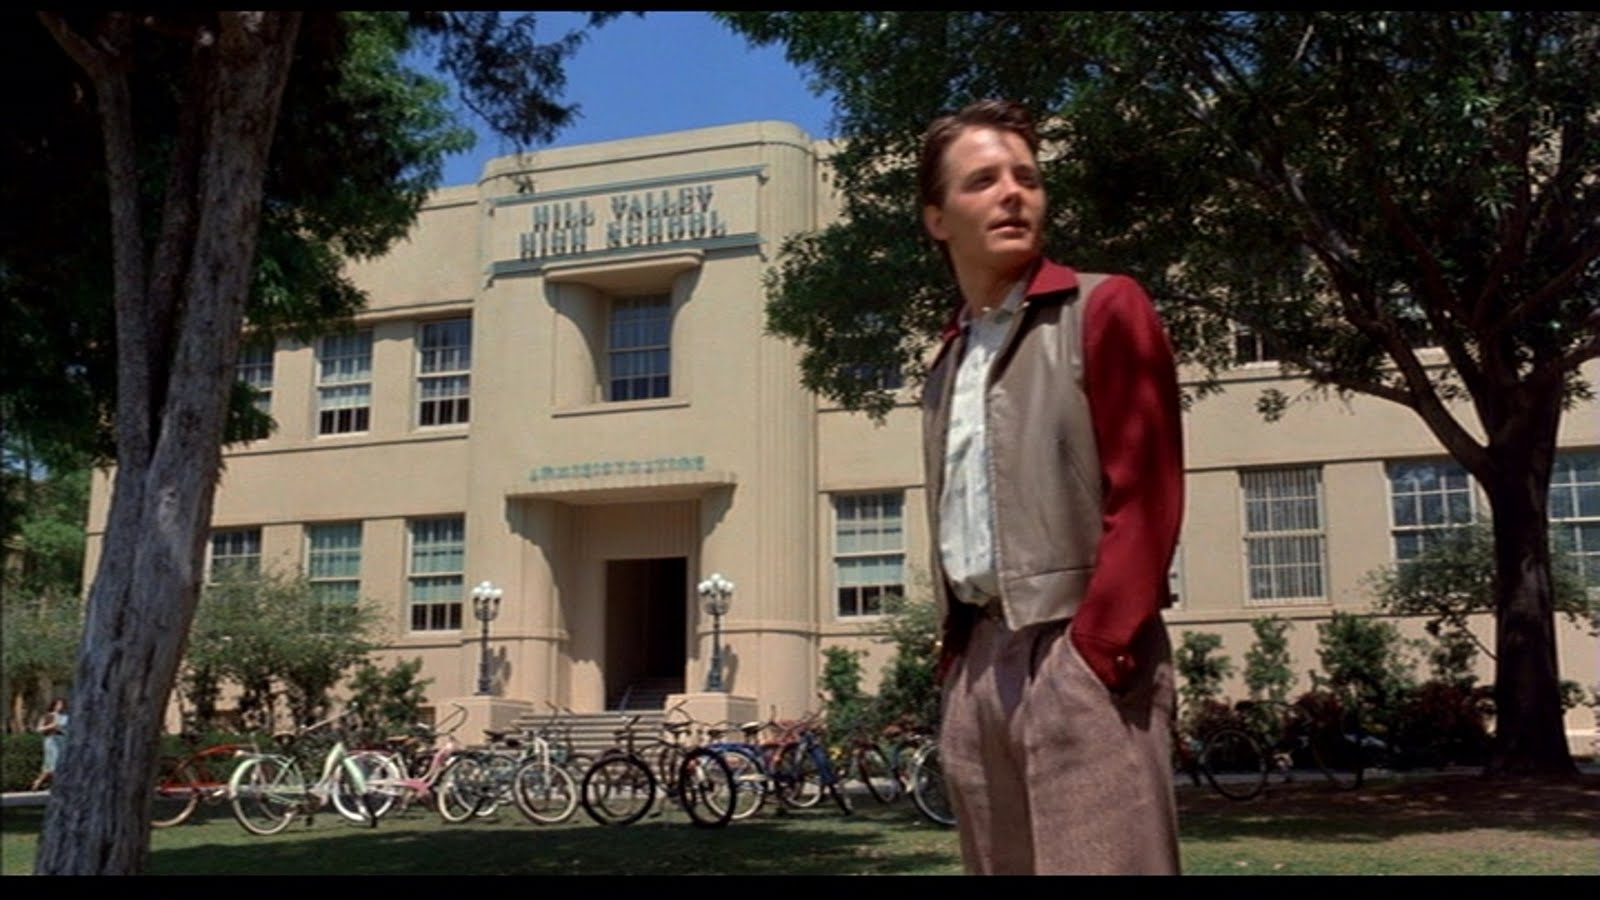 back-to-the-future-filming-locations-marty-high-school-1955